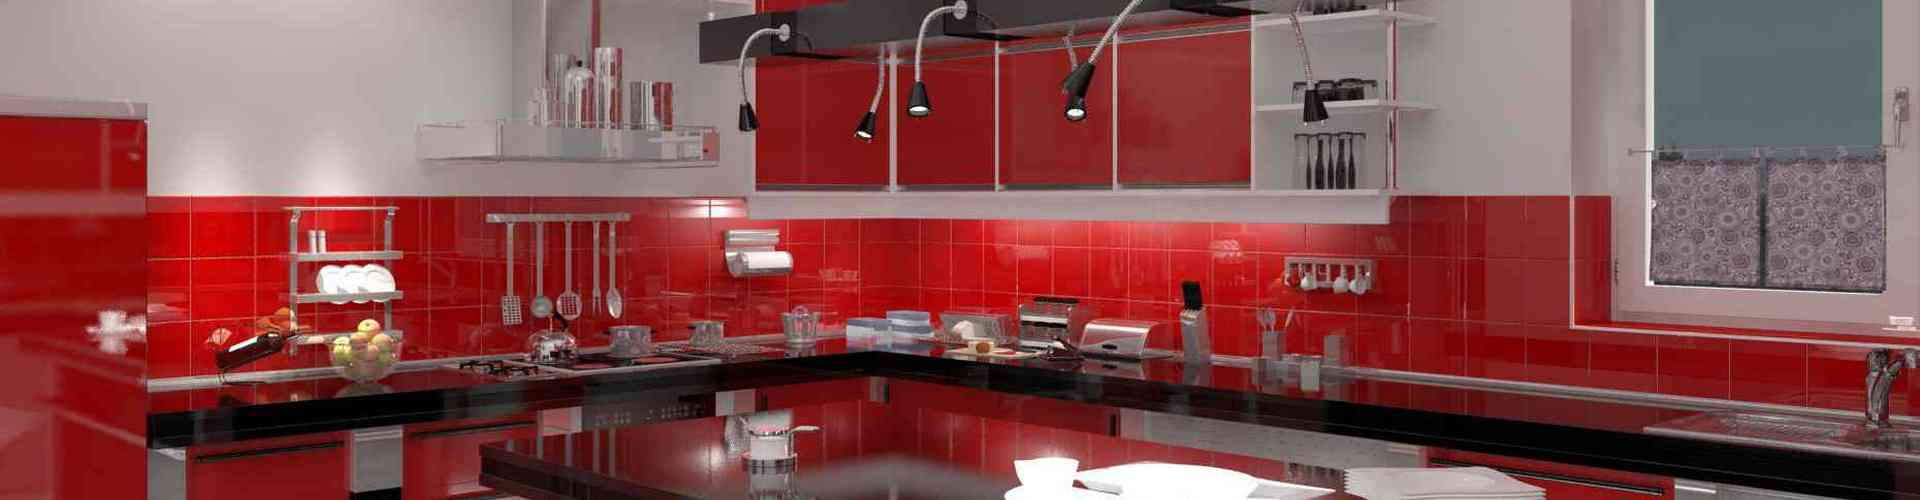 9-red-kitchen